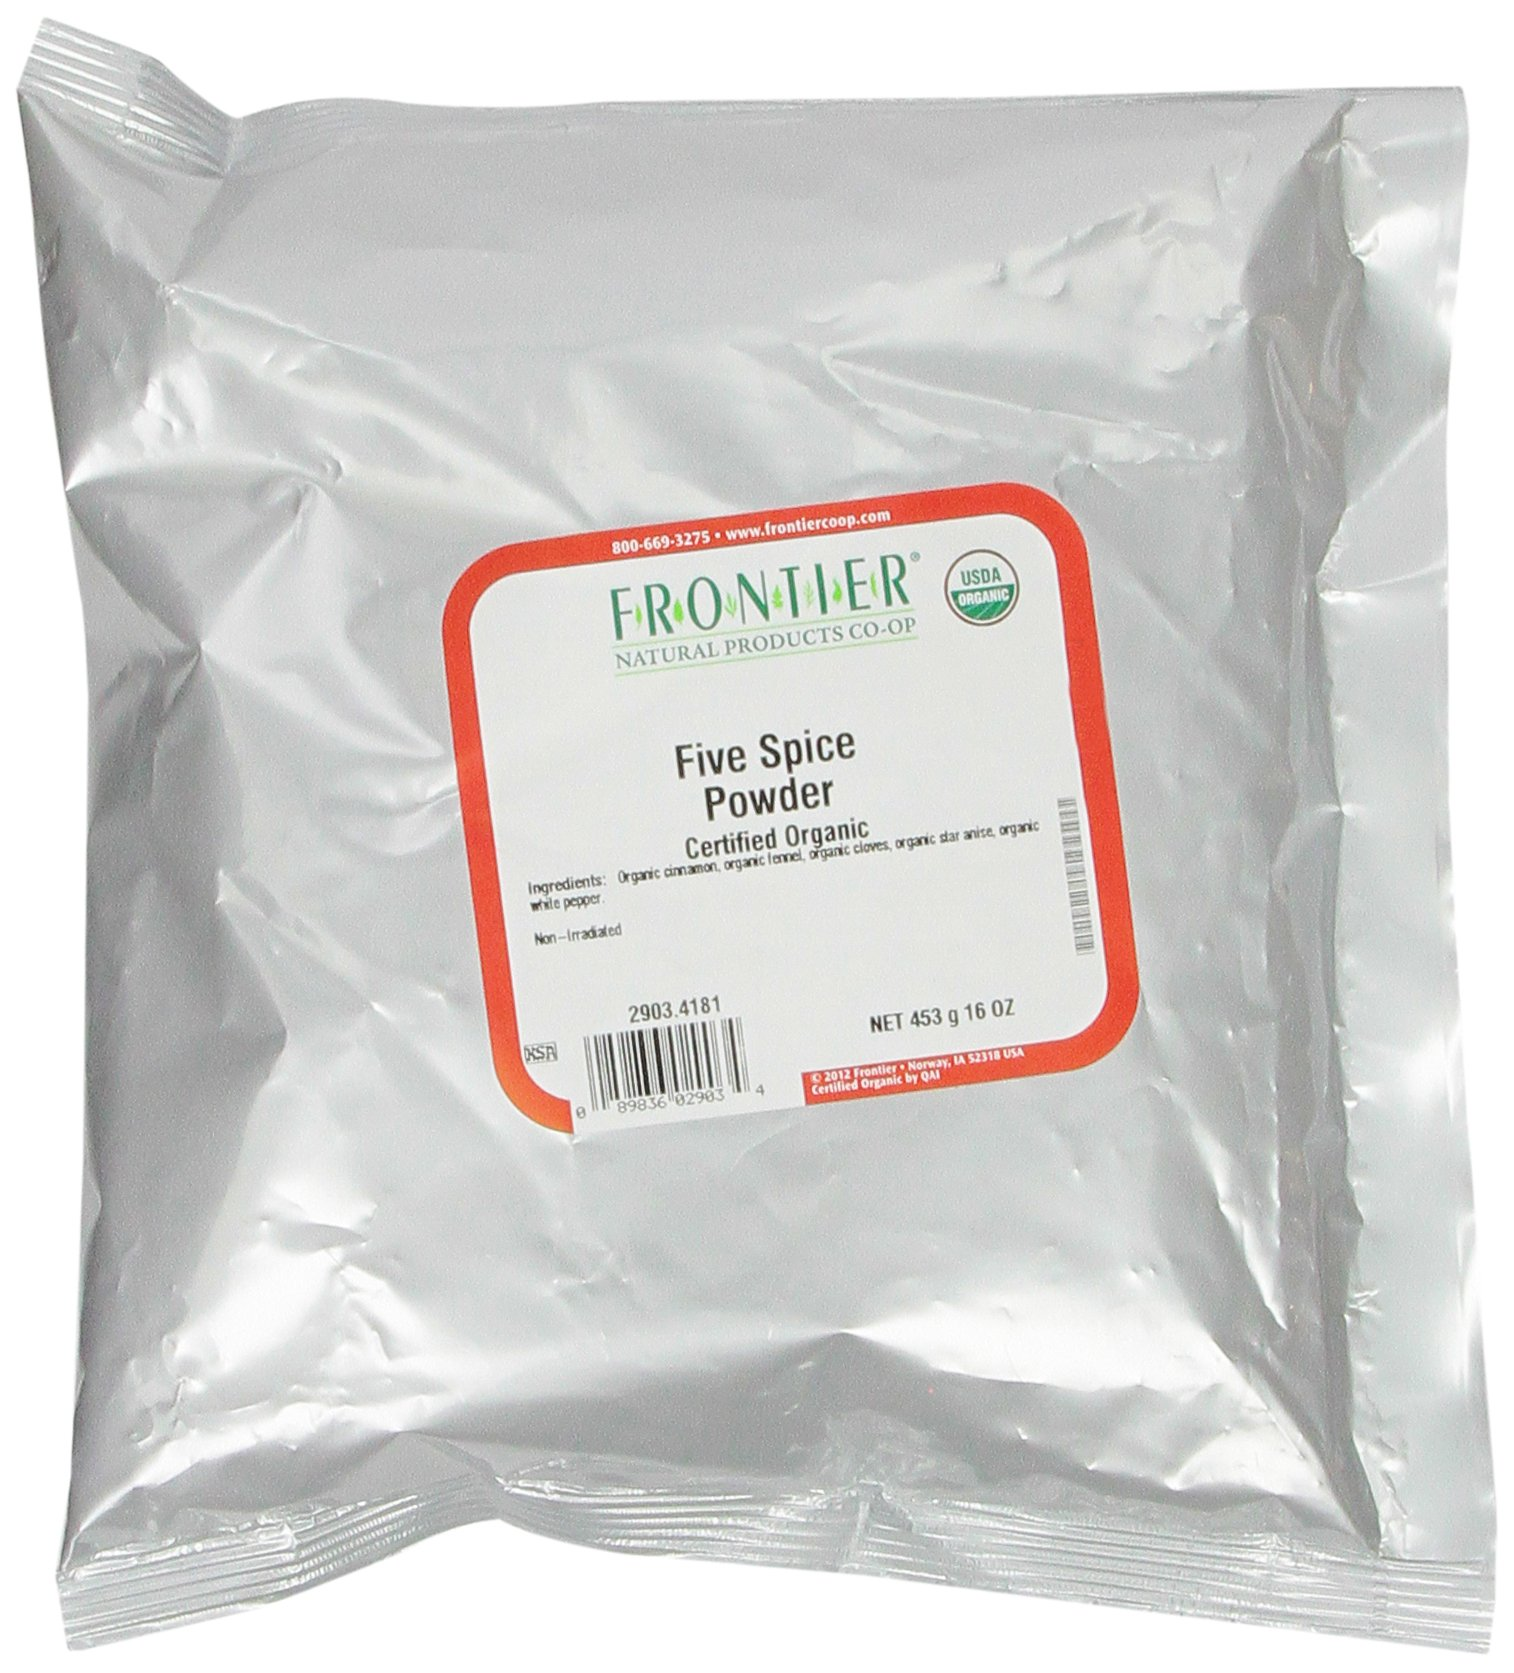 Frontier Five Spice Powder Certified Organic, 16 Ounce Bag